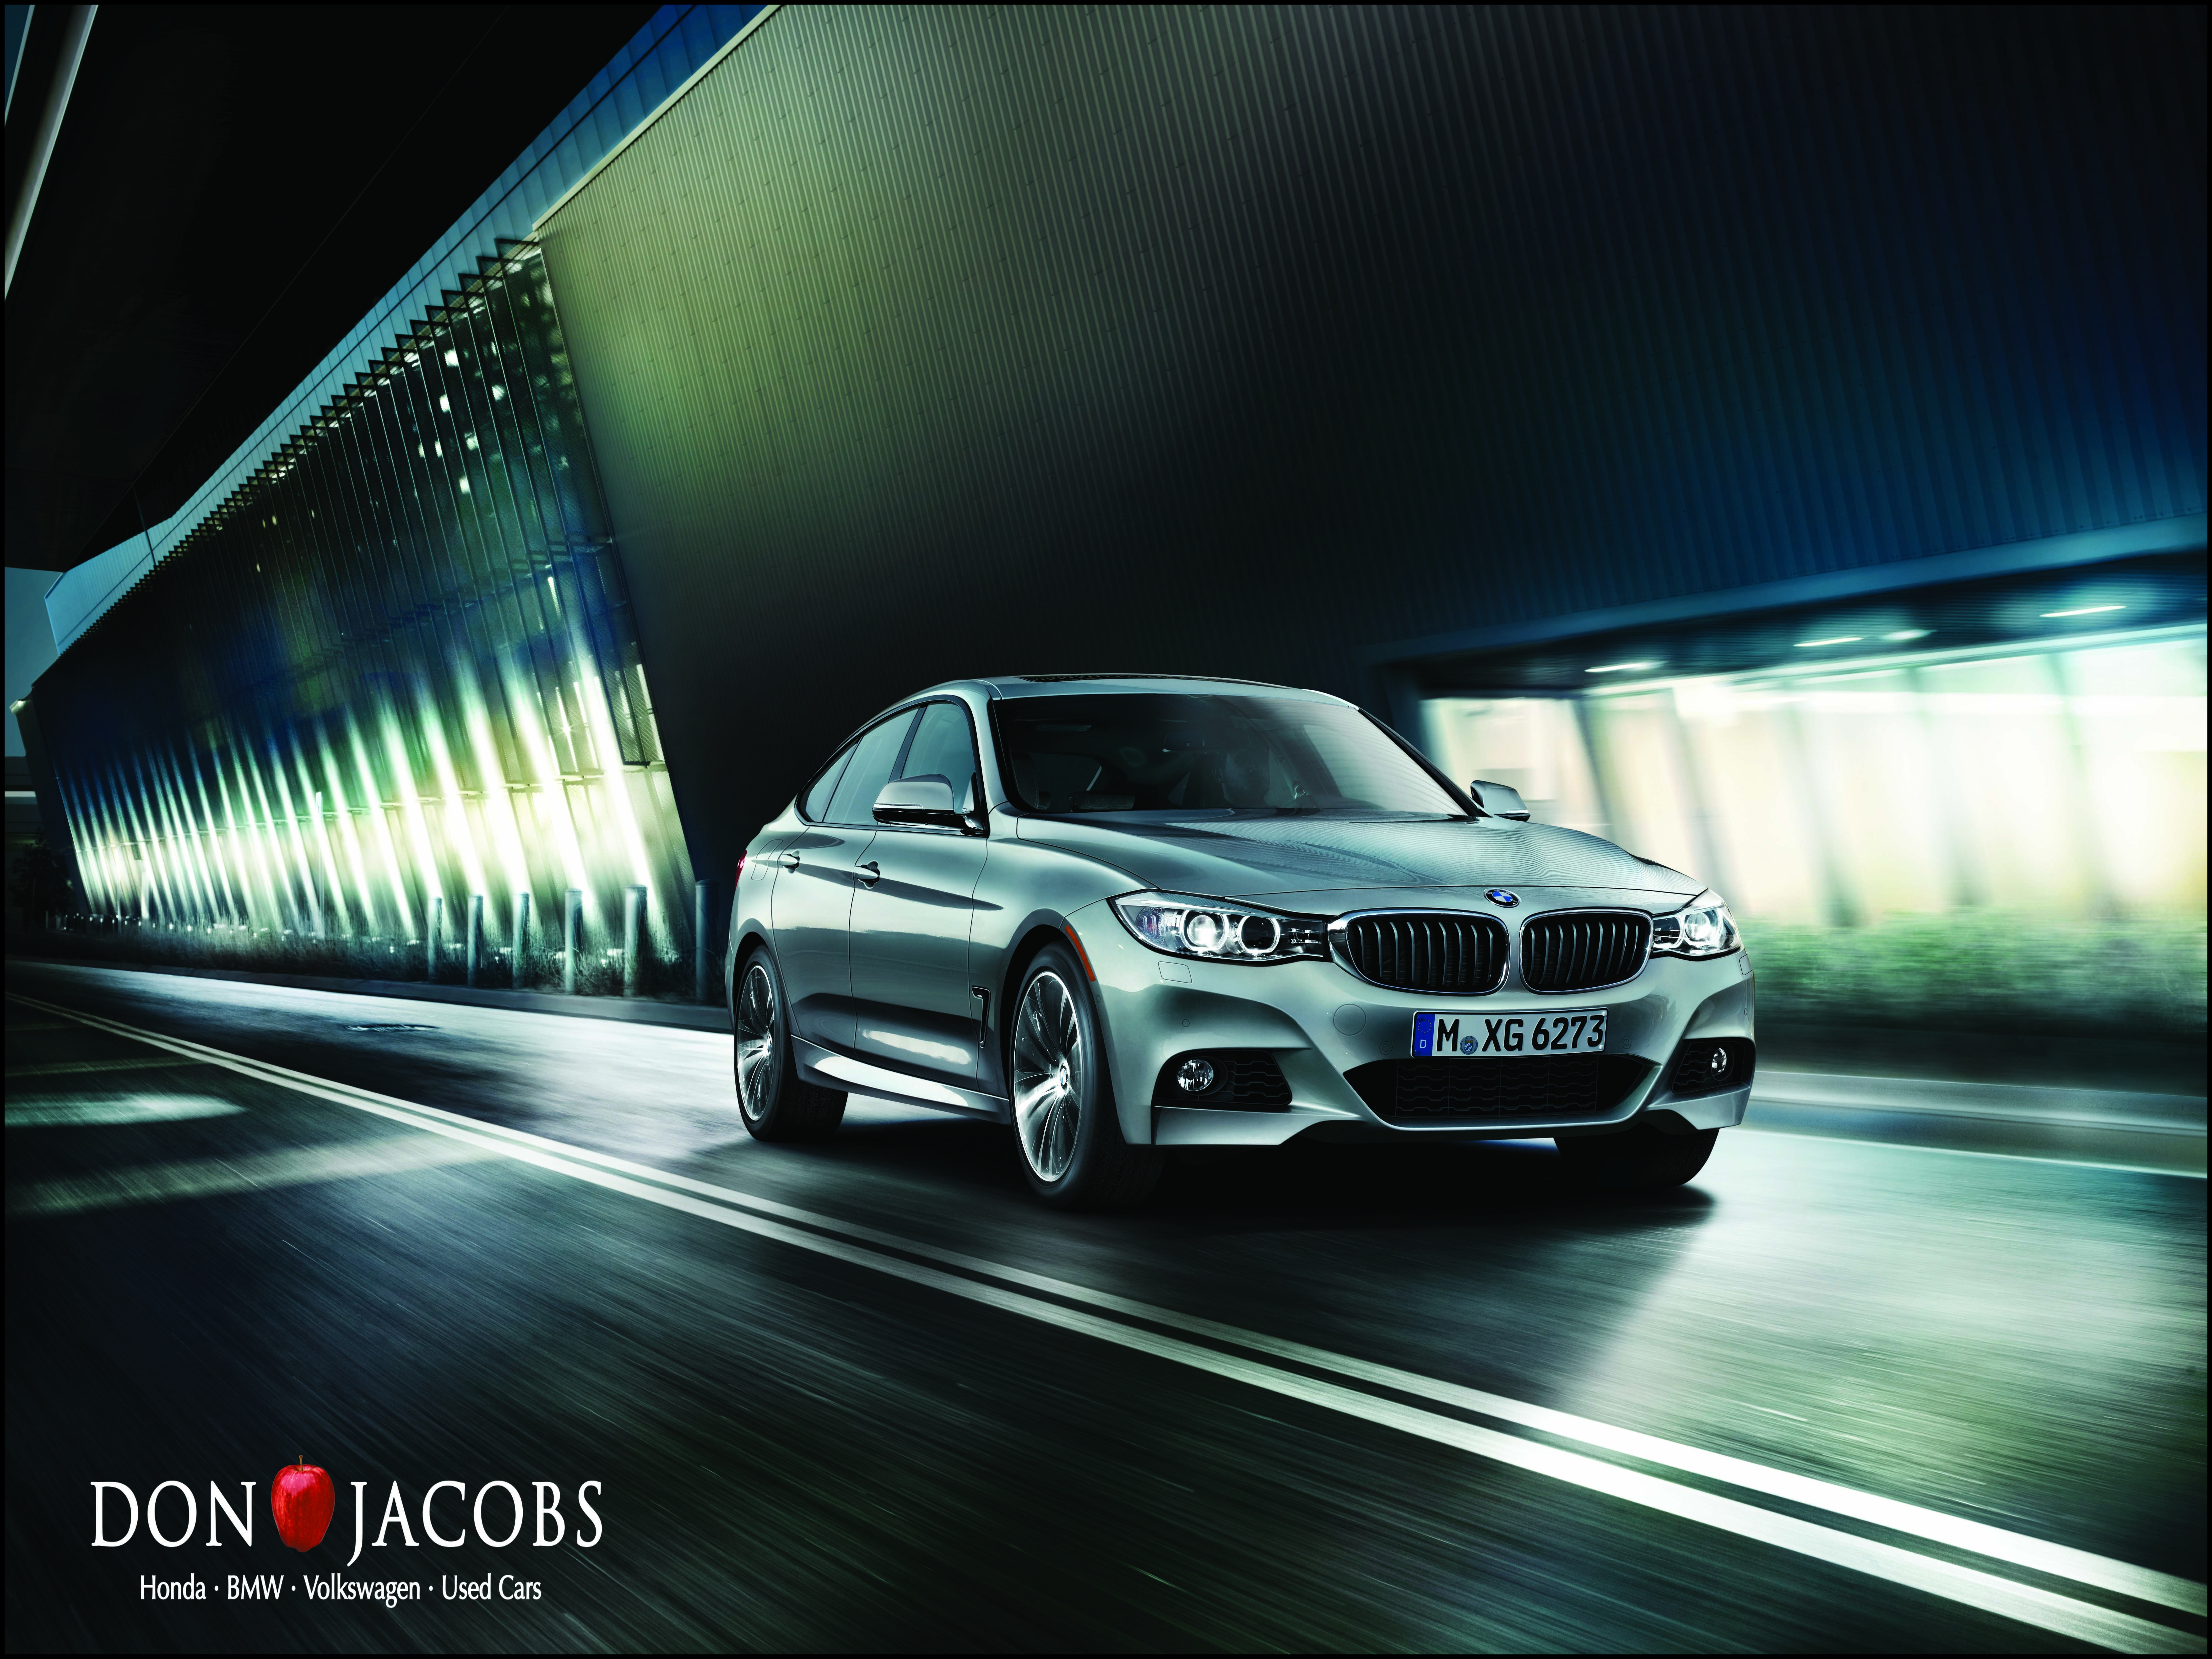 Bmw Don Jacobs Luxury the Award Winning 2014 Bmw 3 Series Check them Out at Don